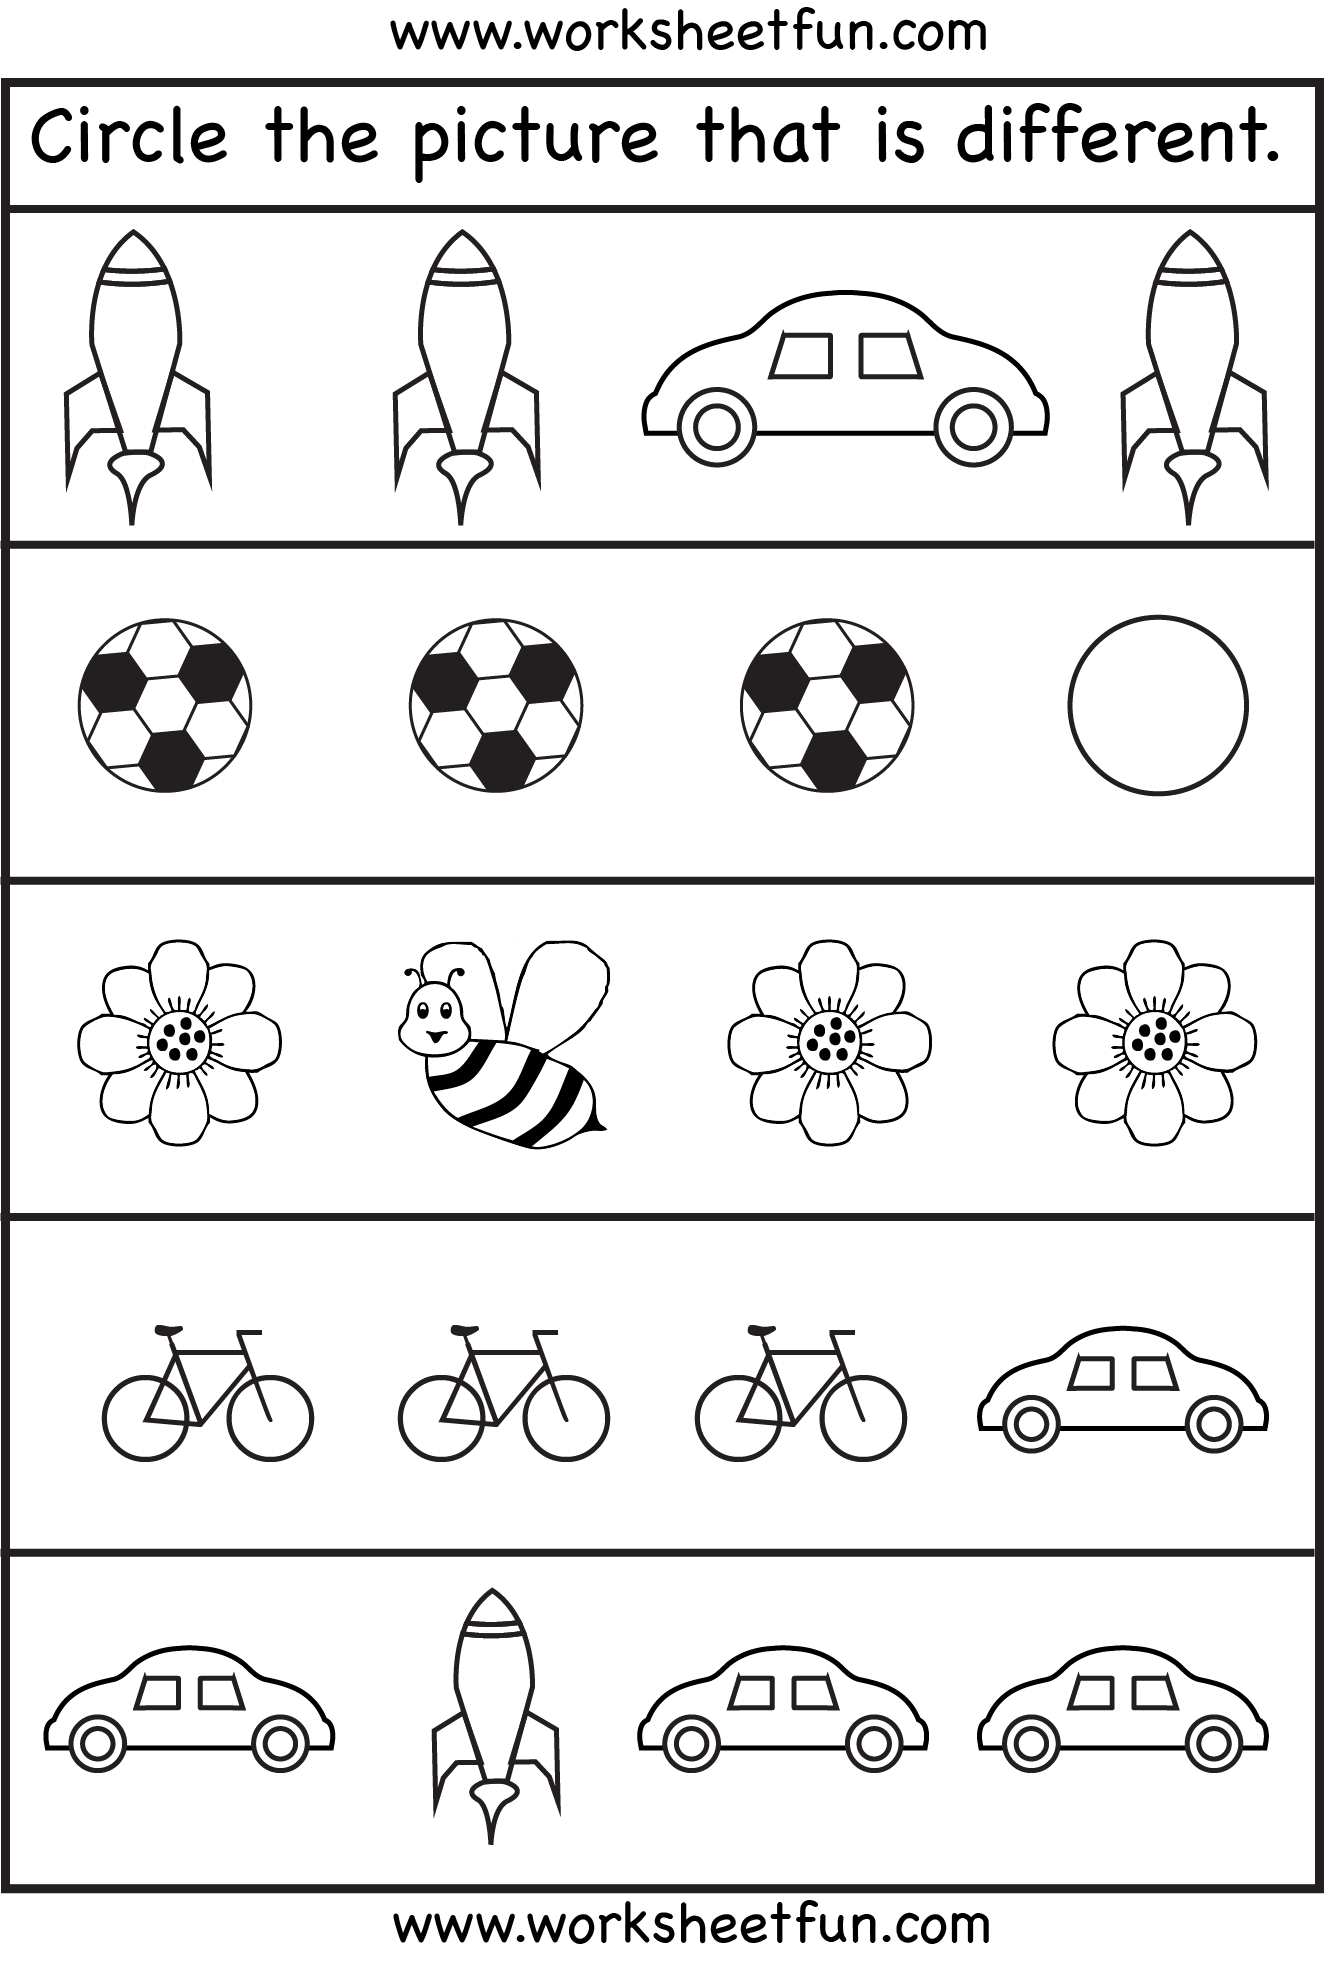 Same or Different Worksheets for Toddler | Kids Worksheets Printable ...